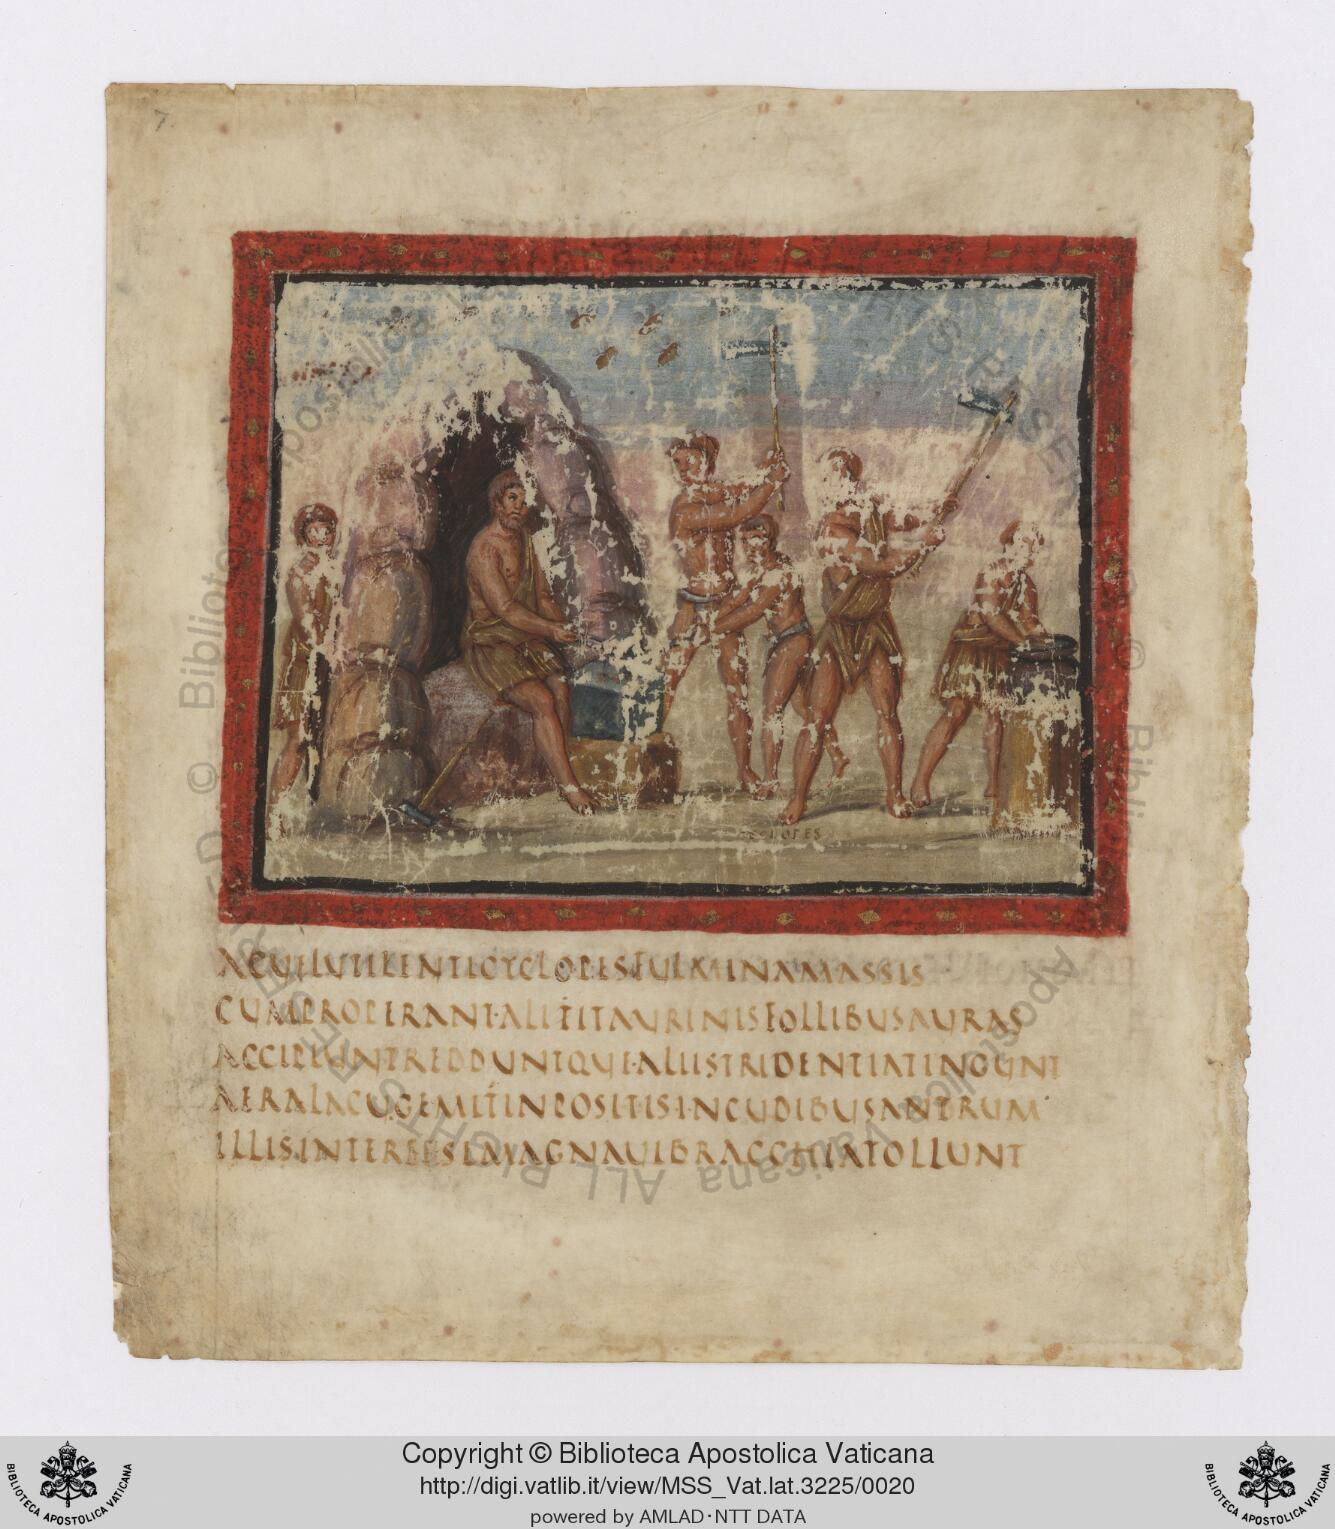 The Apostolic Vatican Library recently announced that it had completed the digitization of a manuscript of about 1600 years of age, which contains fragments of the epic text that was commissioned by the Emperor Augustus in the first century BC.